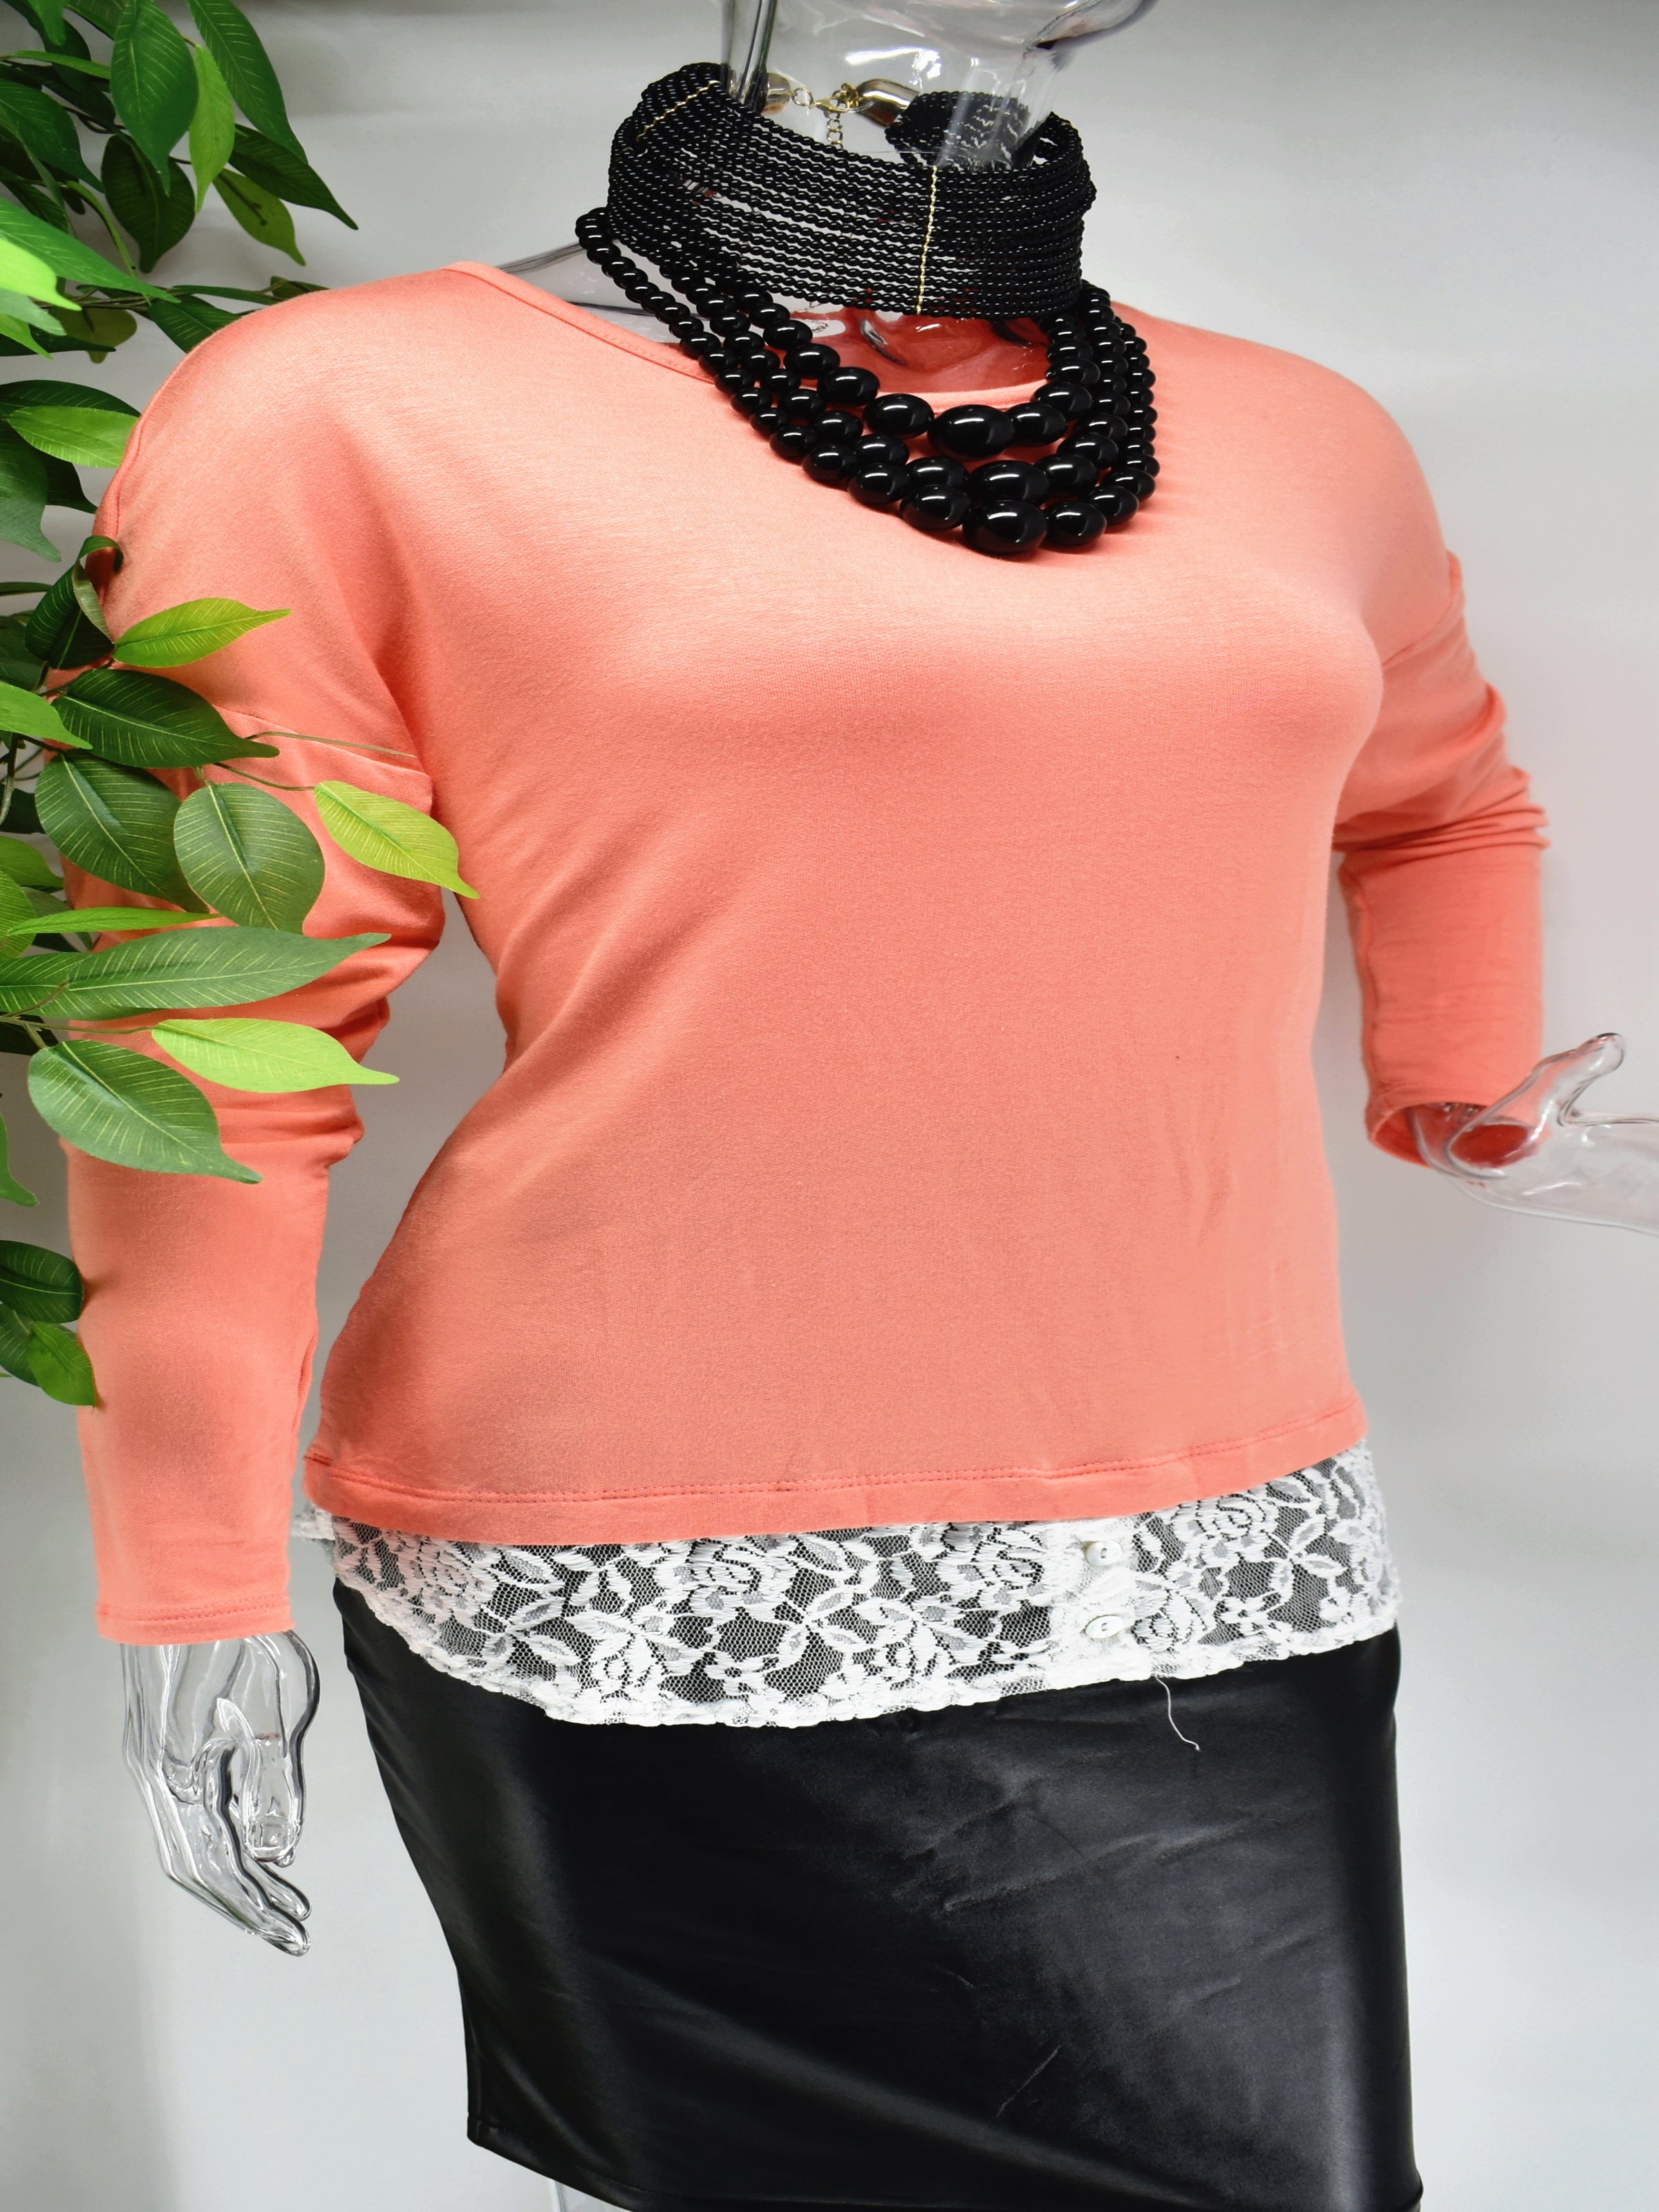 Influence the outcome today in our Belina top. Our Belina is a soft knit peach colored top with lace at the base of the of the top.